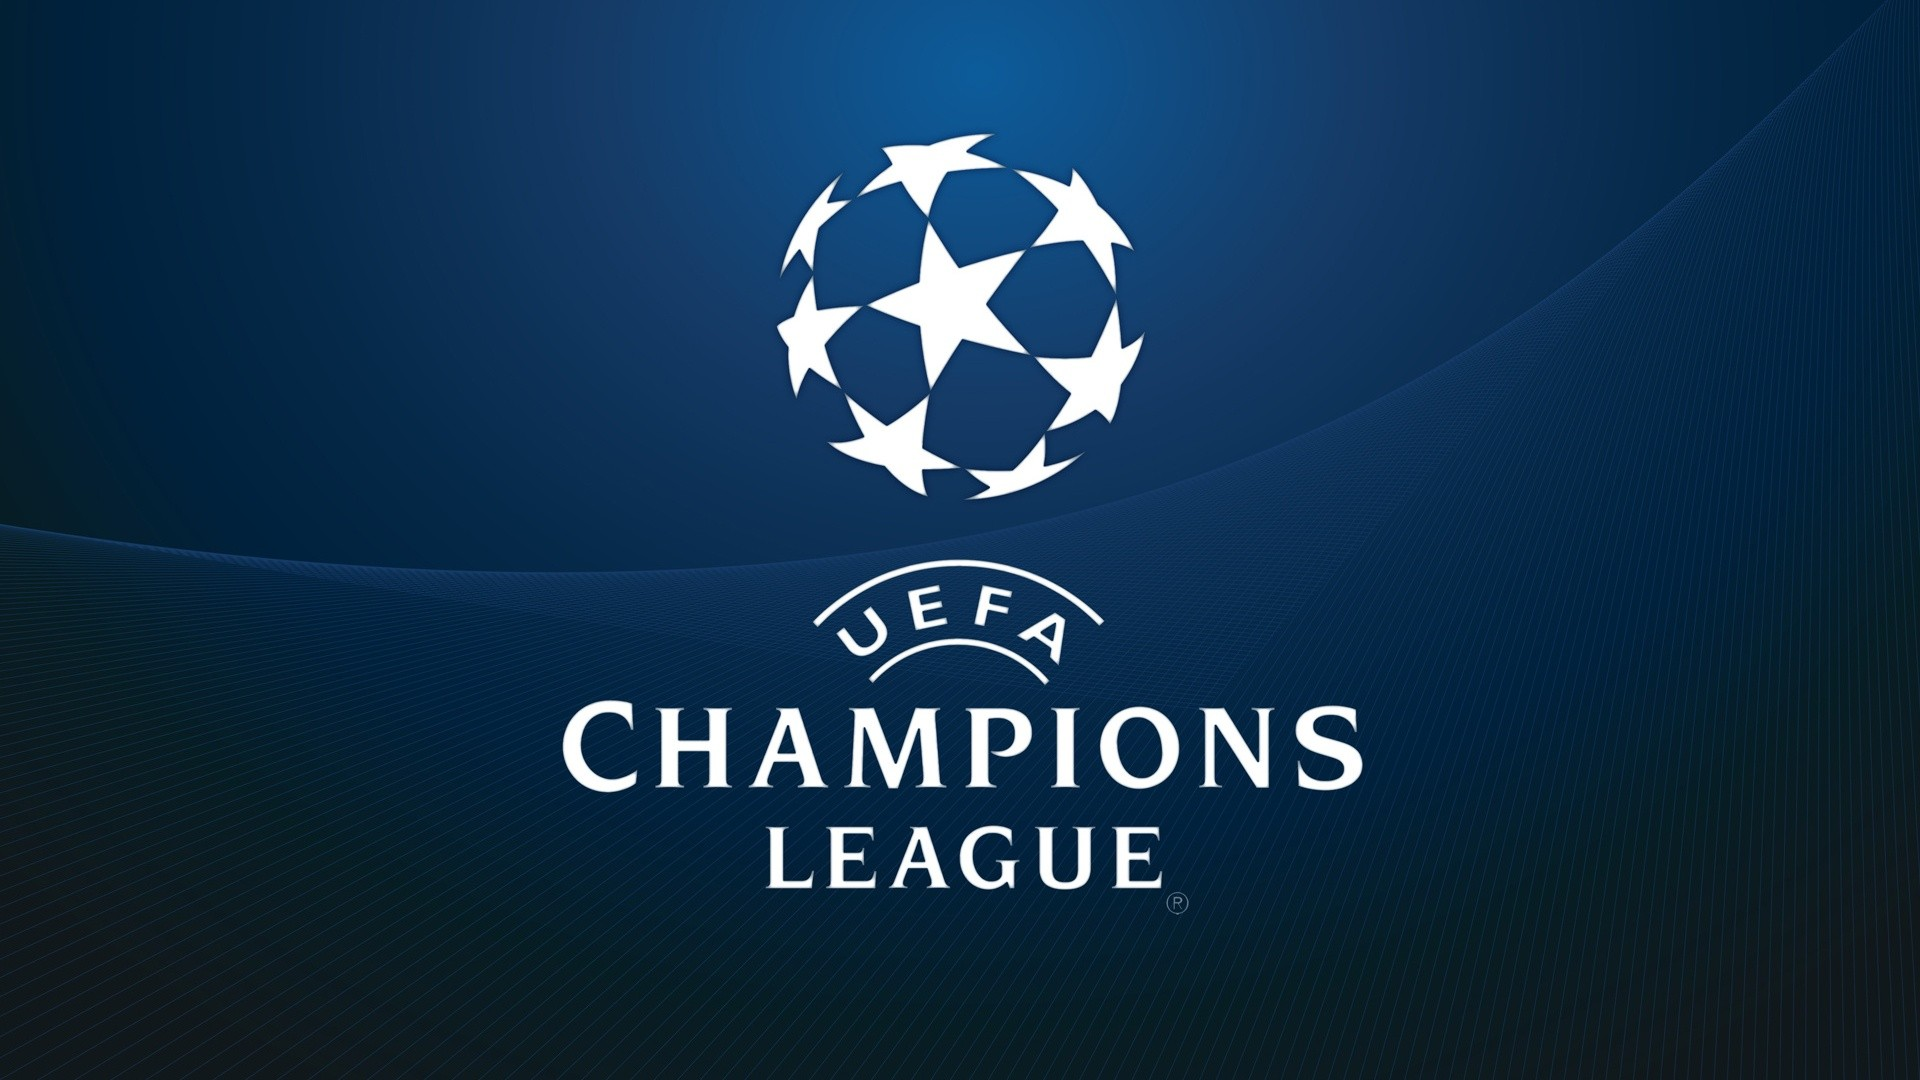 champions league program